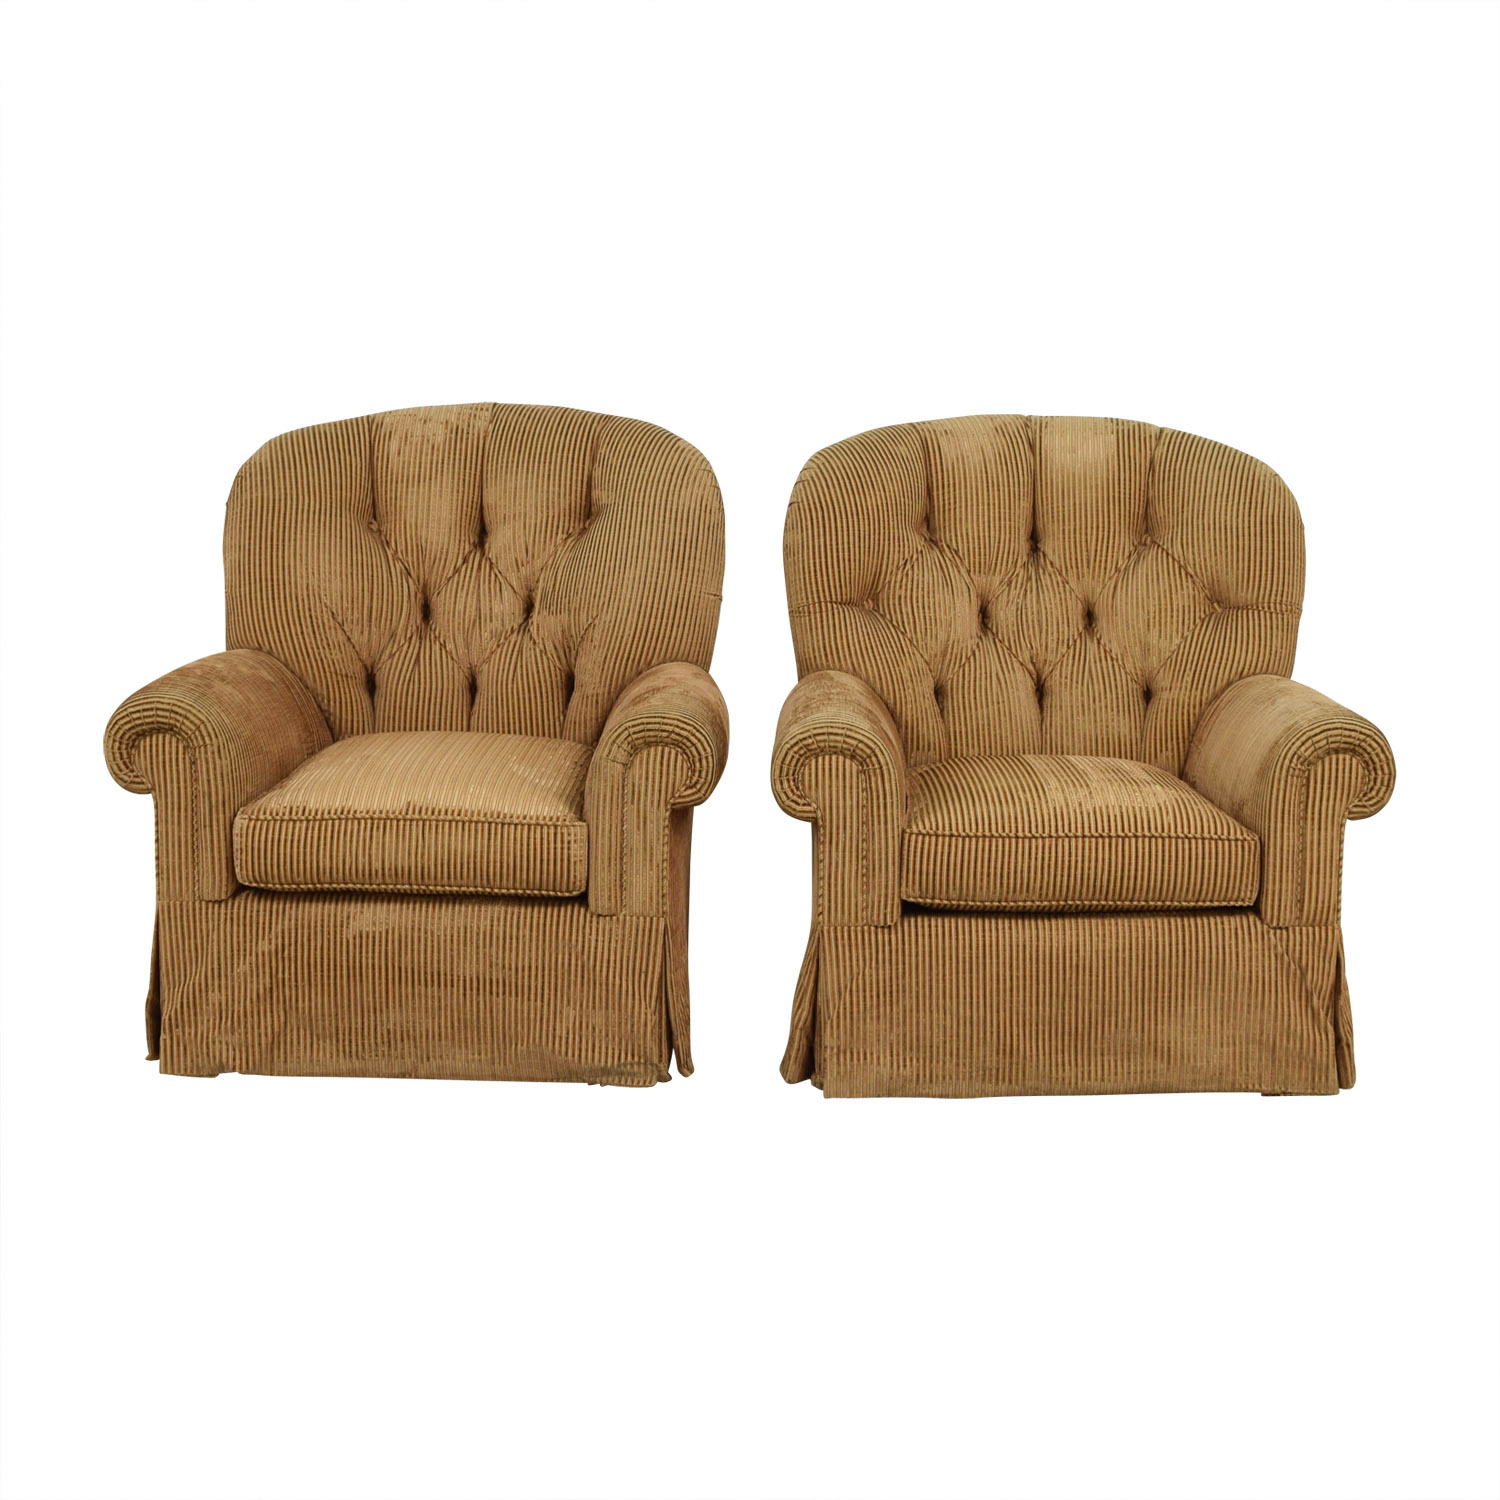 Furniture Masters Furniture Masters Brown Tufted Club Chairs discount